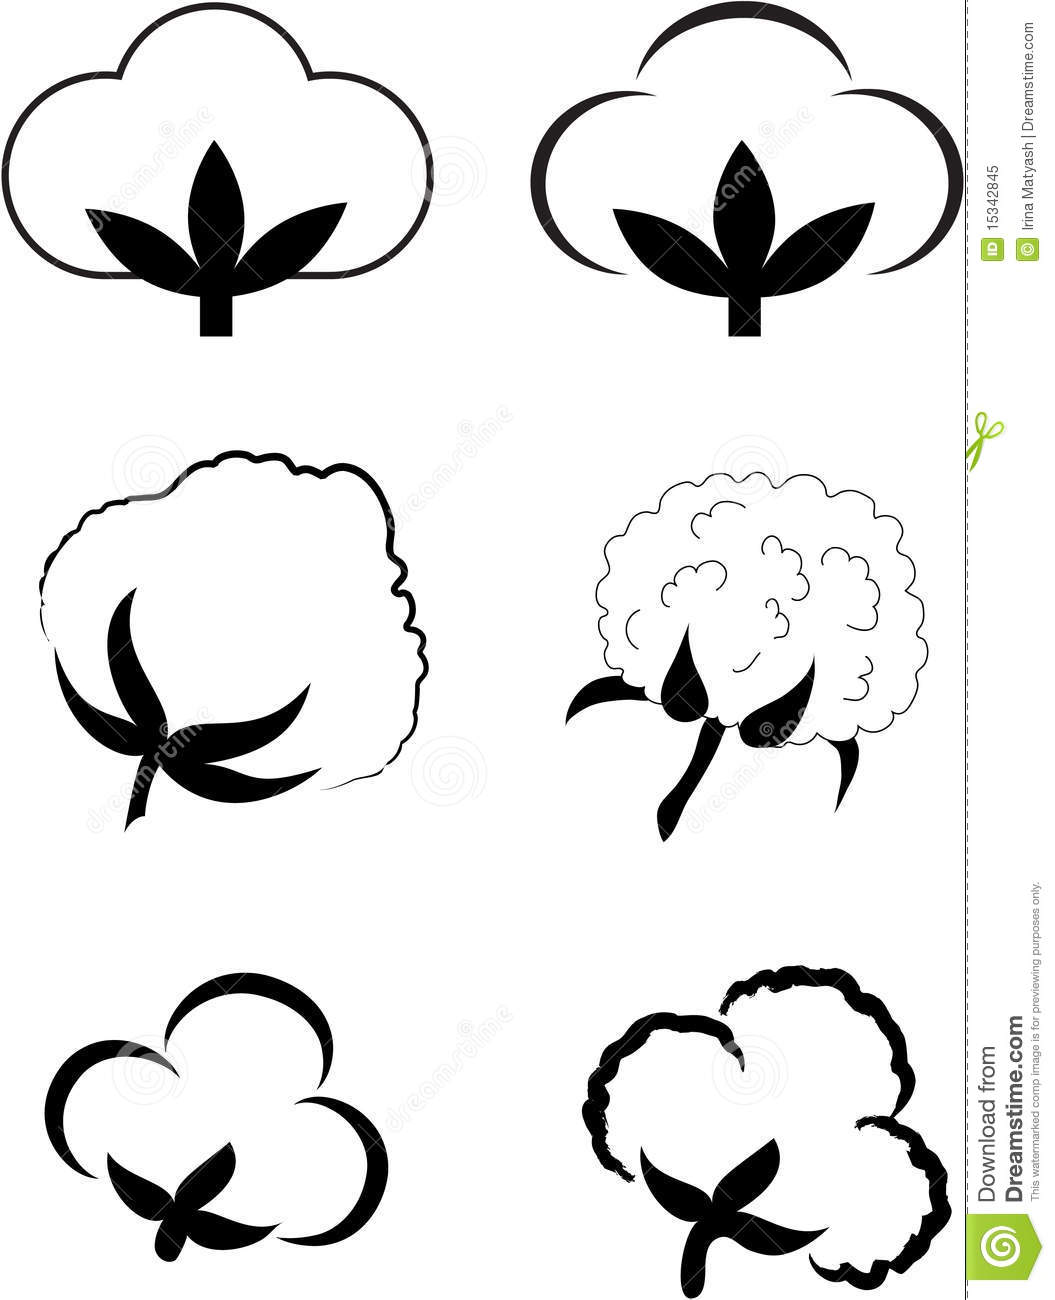 Cotton  Gossypium  Element For Design Vector Illustration